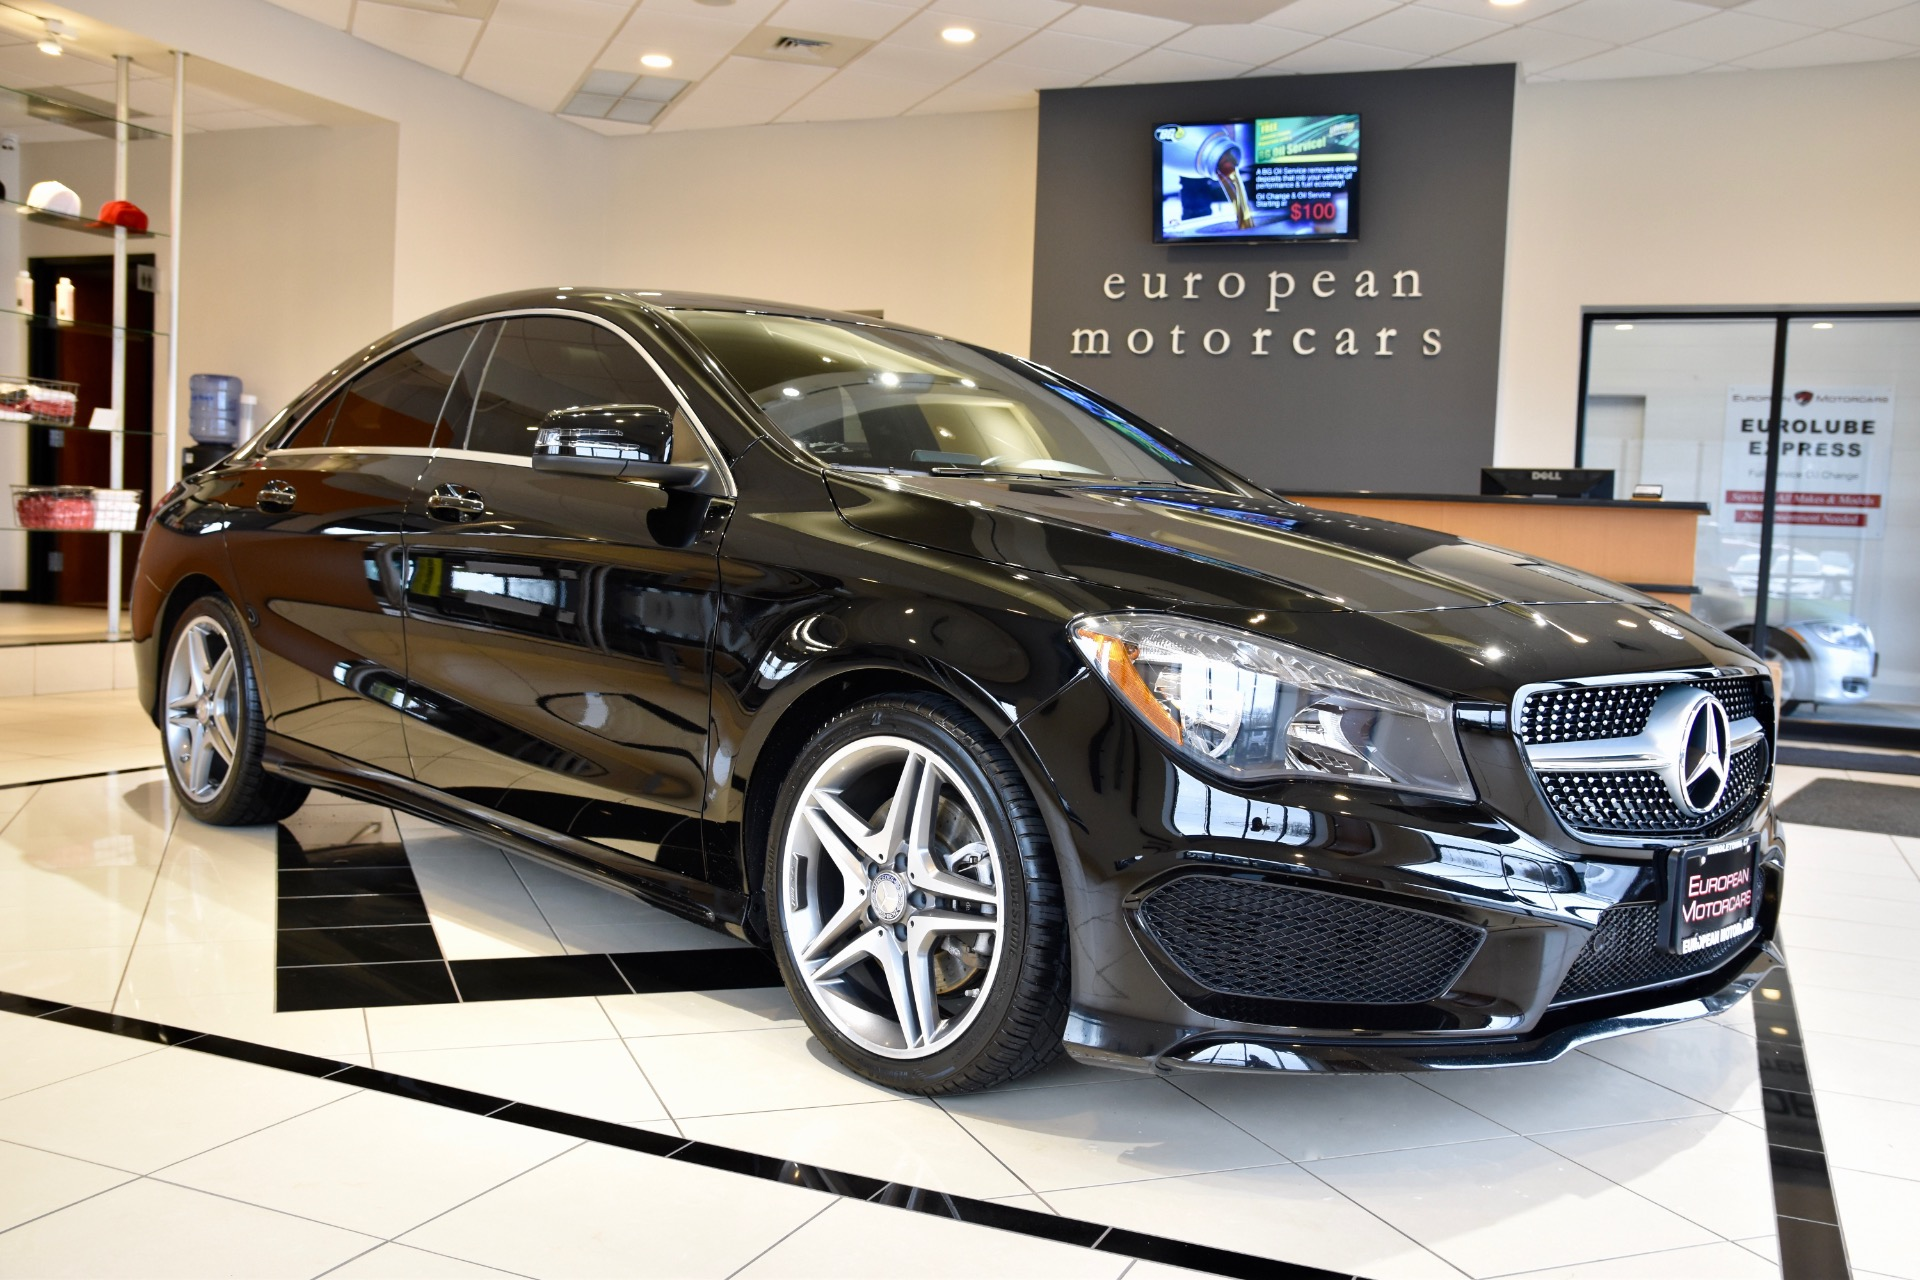 2015 mercedes benz cla cla 250 4matic for sale near for Euro motorcars mercedes benz